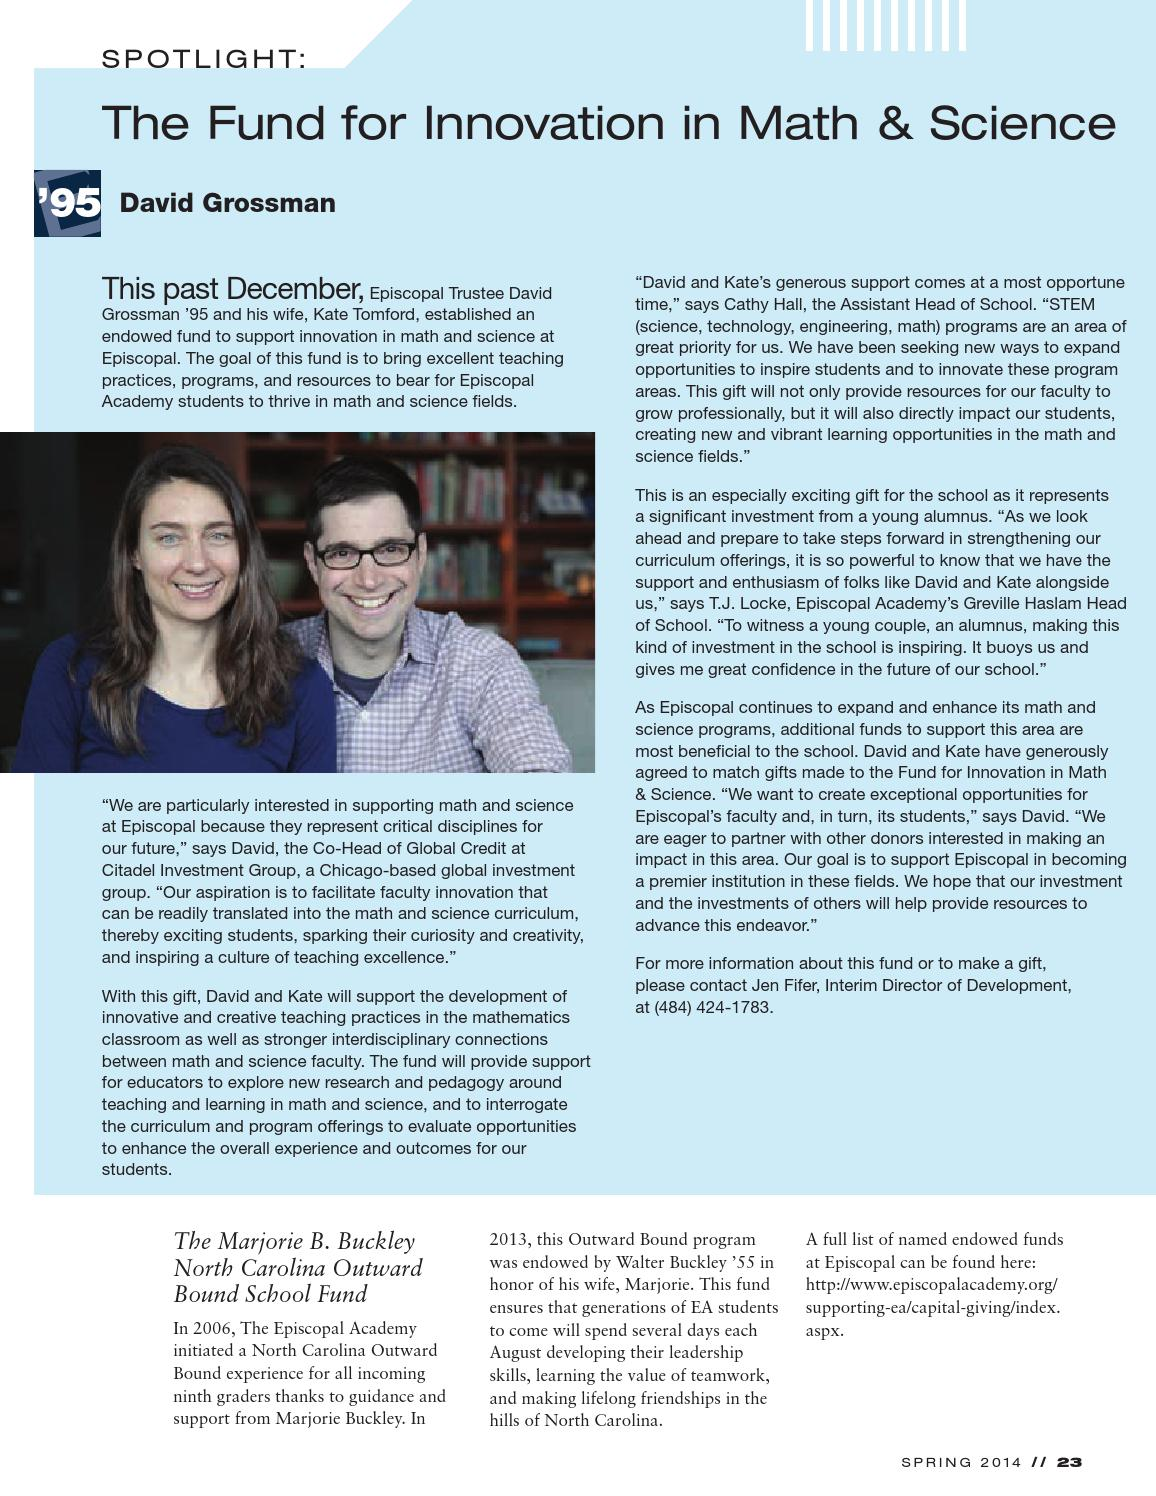 Connections Magazine: Spring 2014 by The Episcopal Academy - issuu